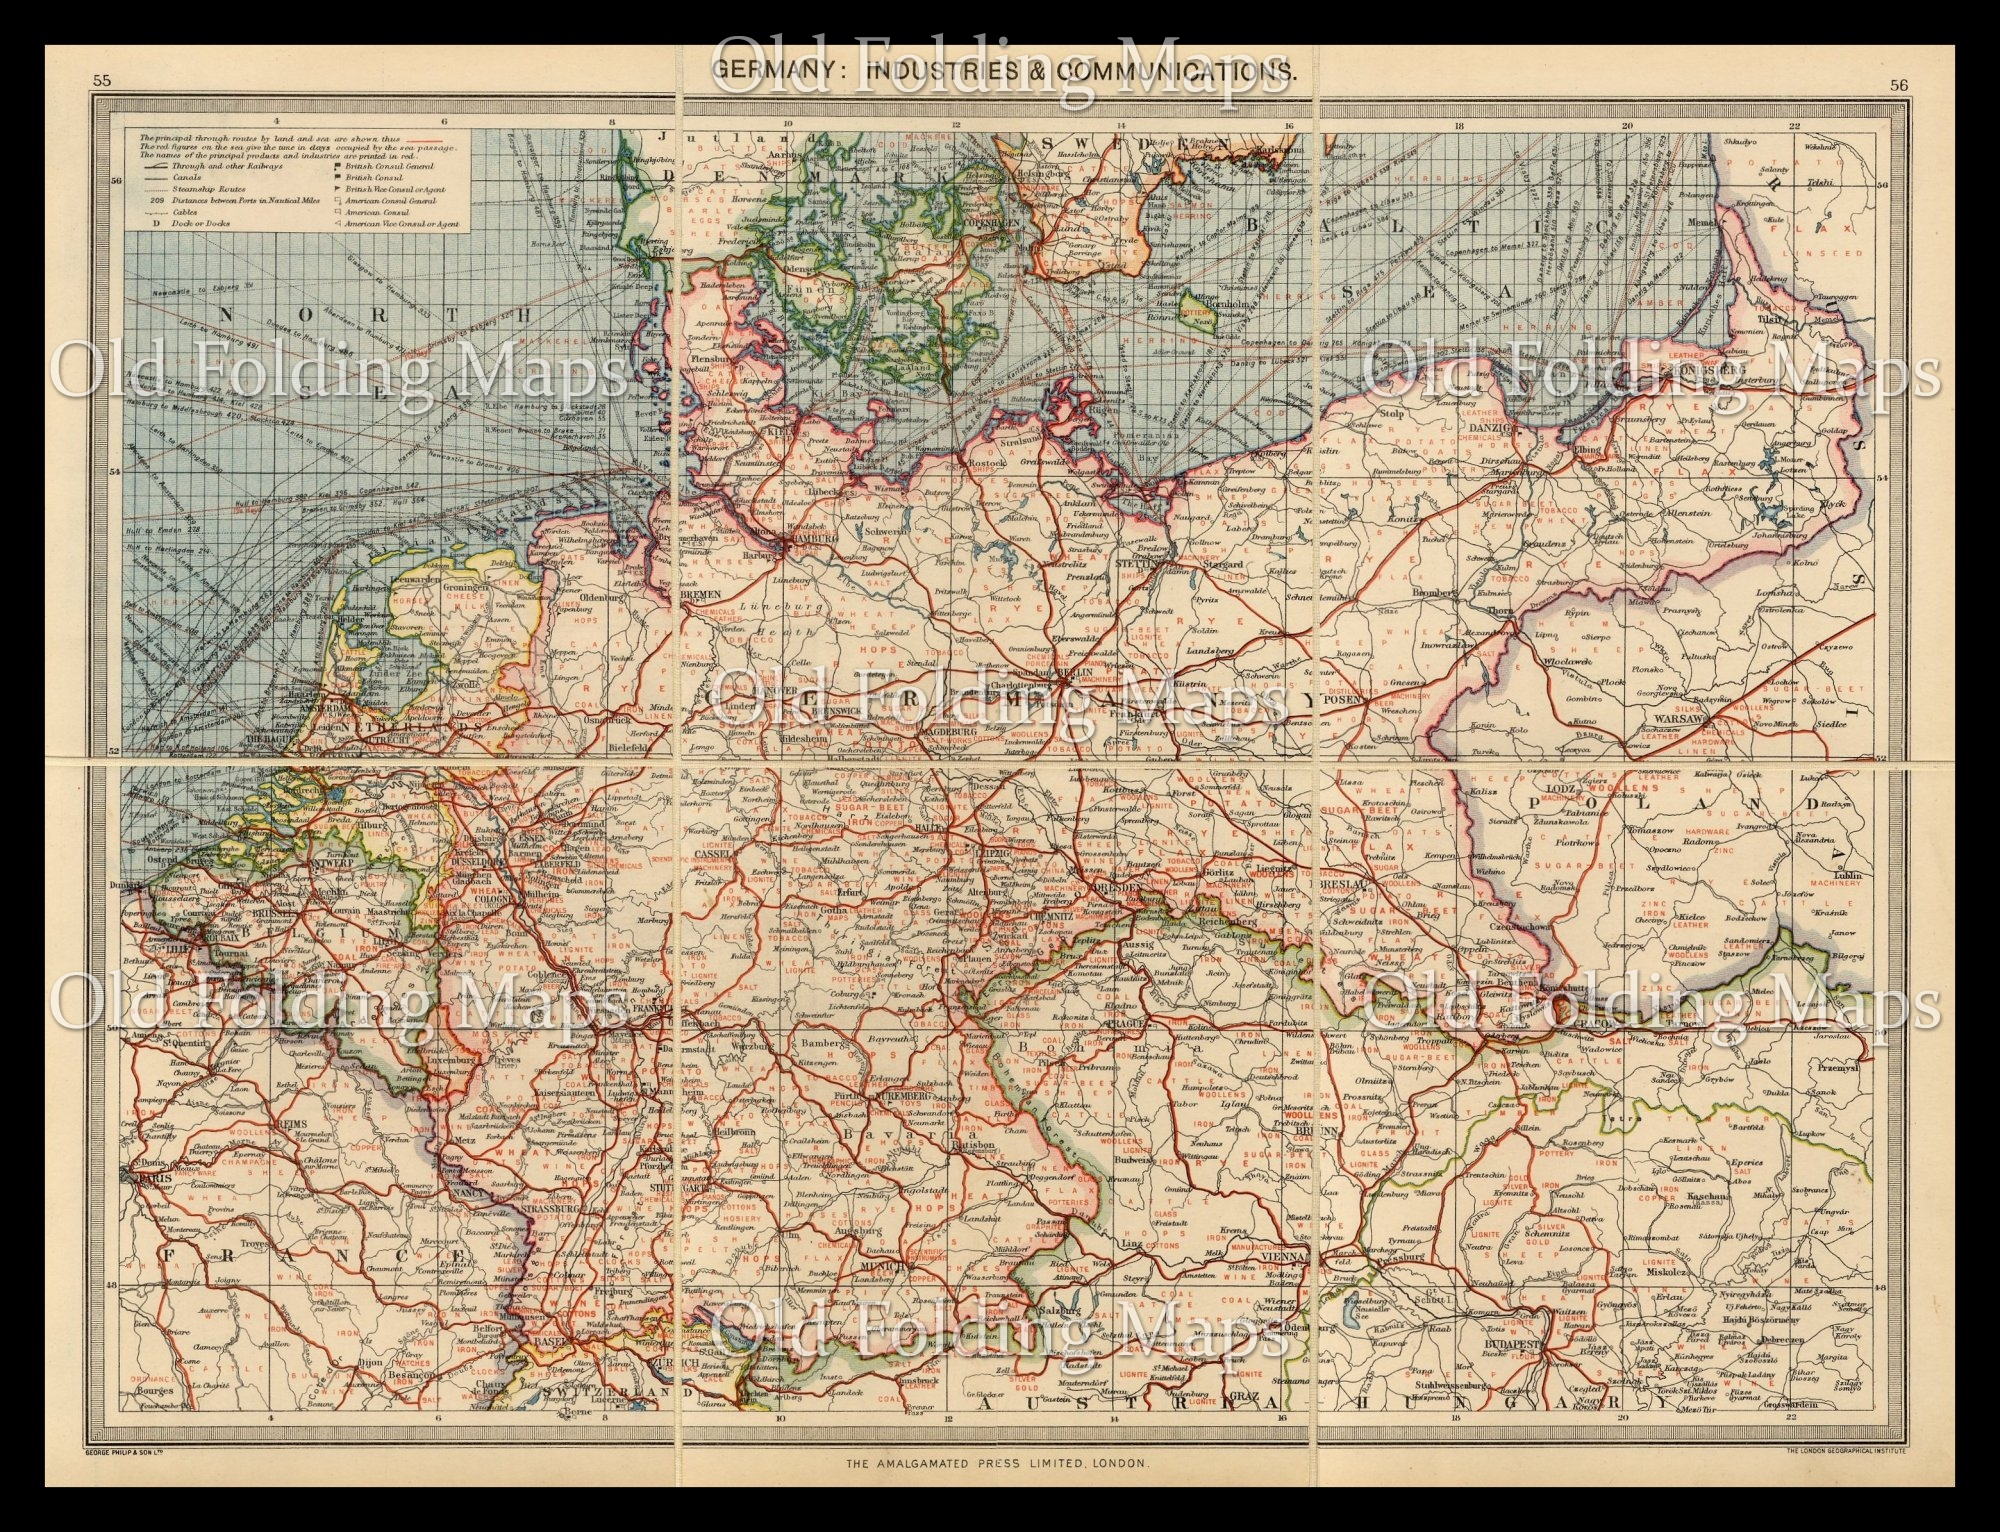 Map Of Old Germany.Old Map Of Germany Industries Communications Circa 1900